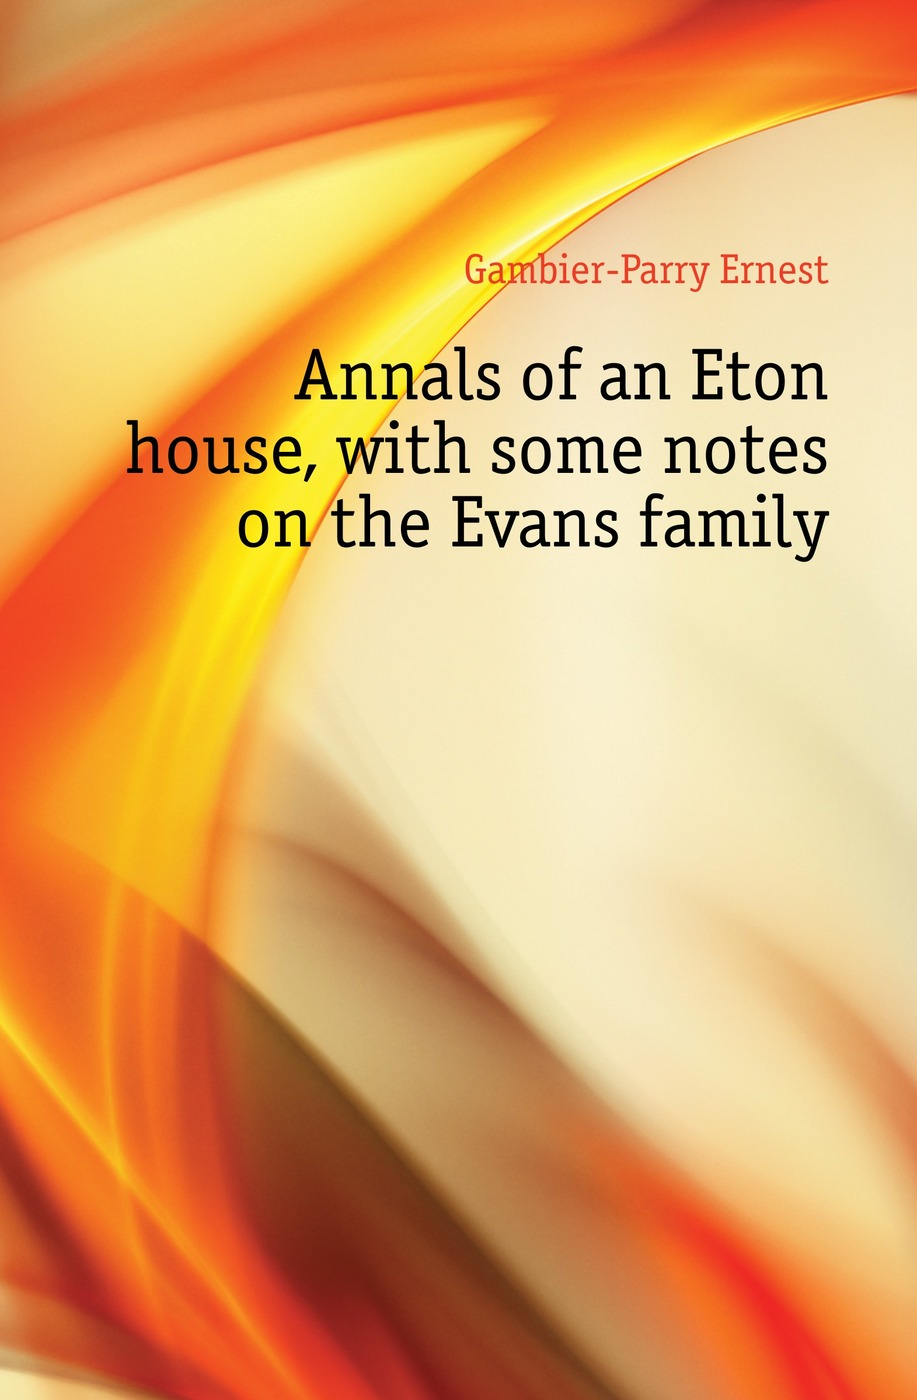 Gambier-Parry Ernest Annals of an Eton house, with some notes on the Evans family